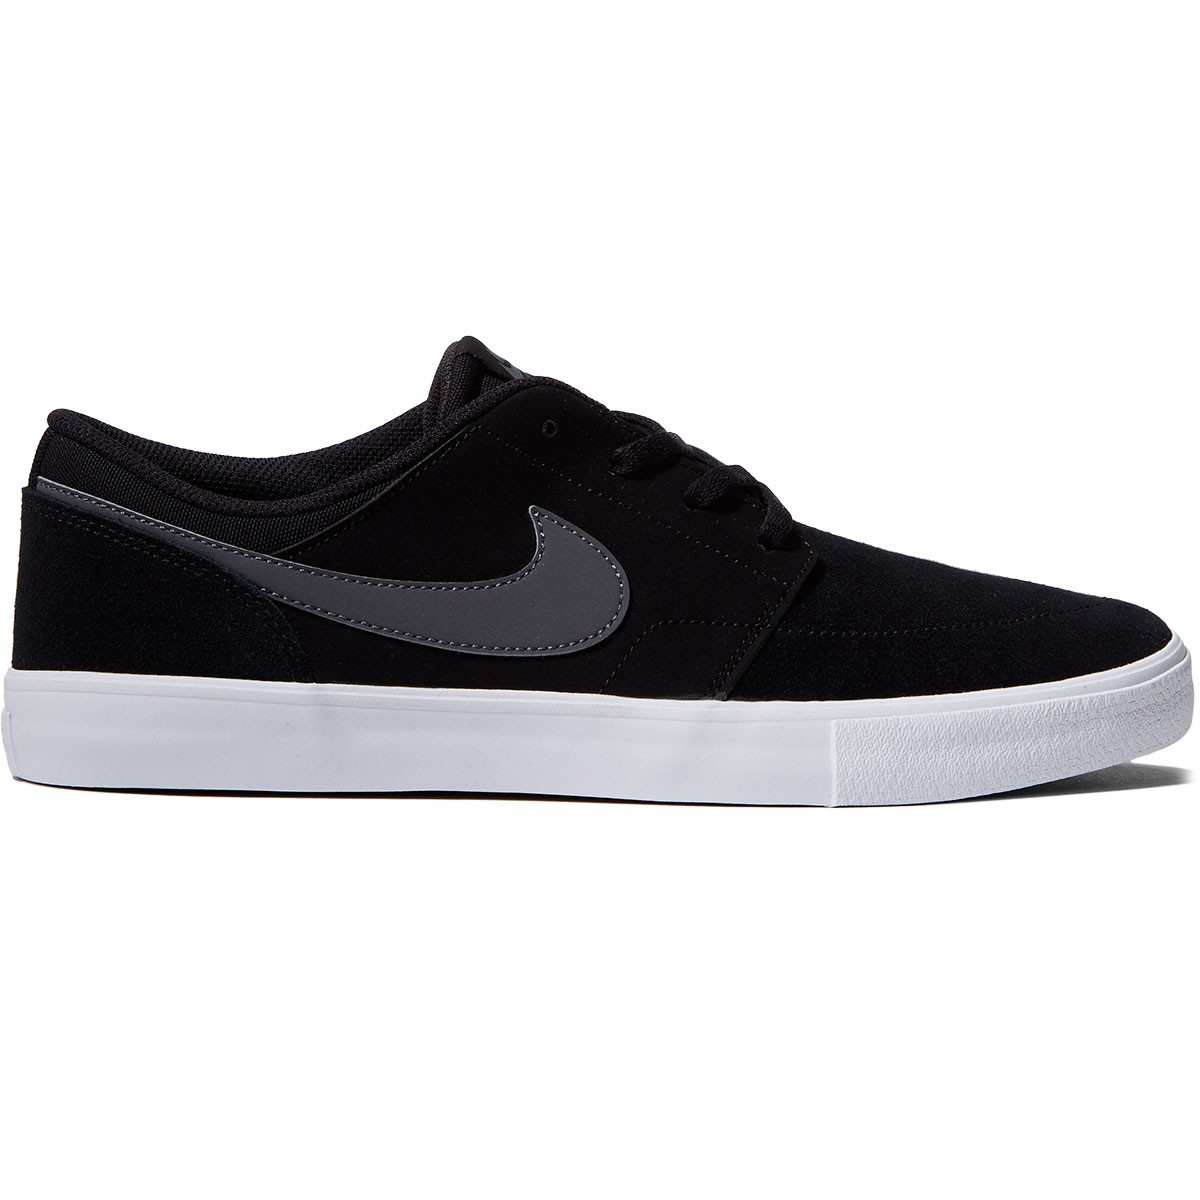 nike sb solarsoft portmore ii shoes. Black Bedroom Furniture Sets. Home Design Ideas